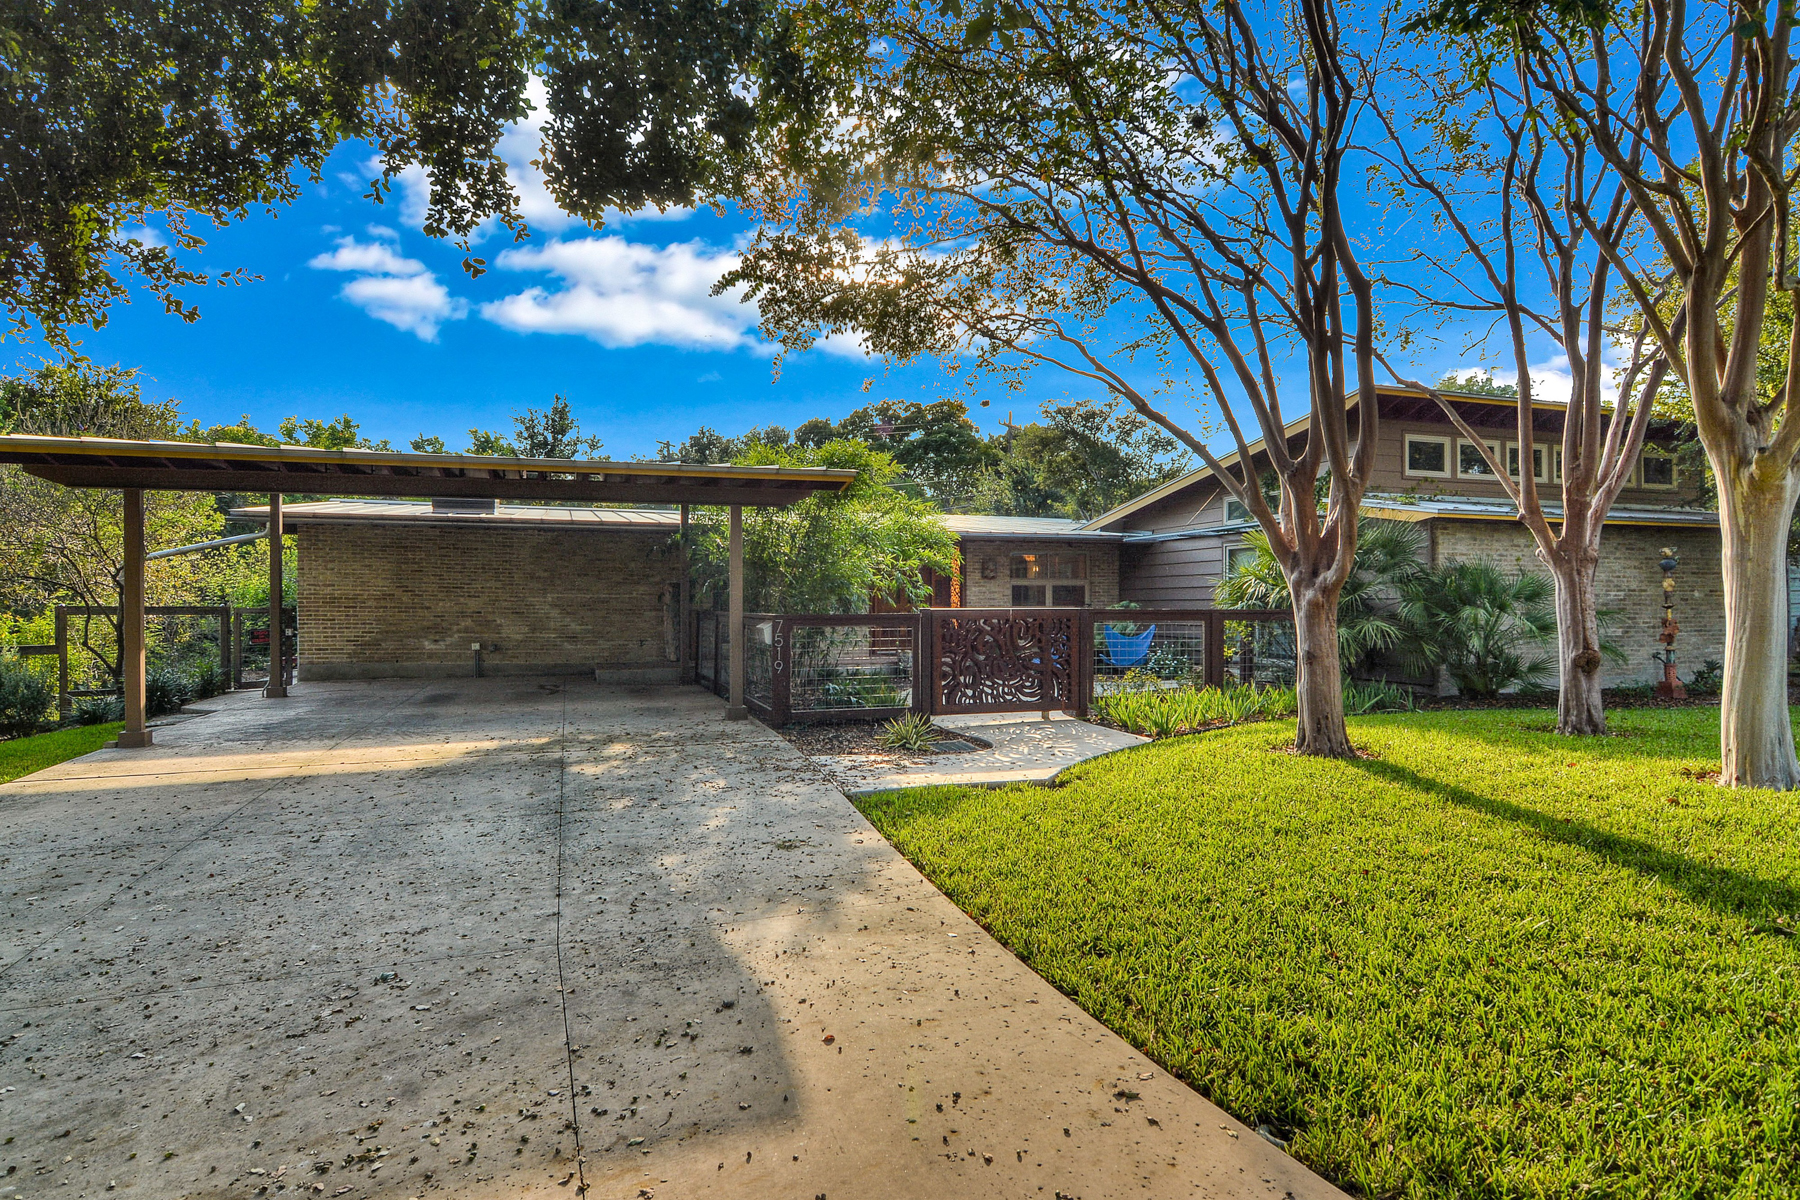 Casa Unifamiliar por un Venta en Great Mid-Century Modern Home in Northwood 7519 Quail Run Dr San Antonio, Texas 78209 Estados Unidos